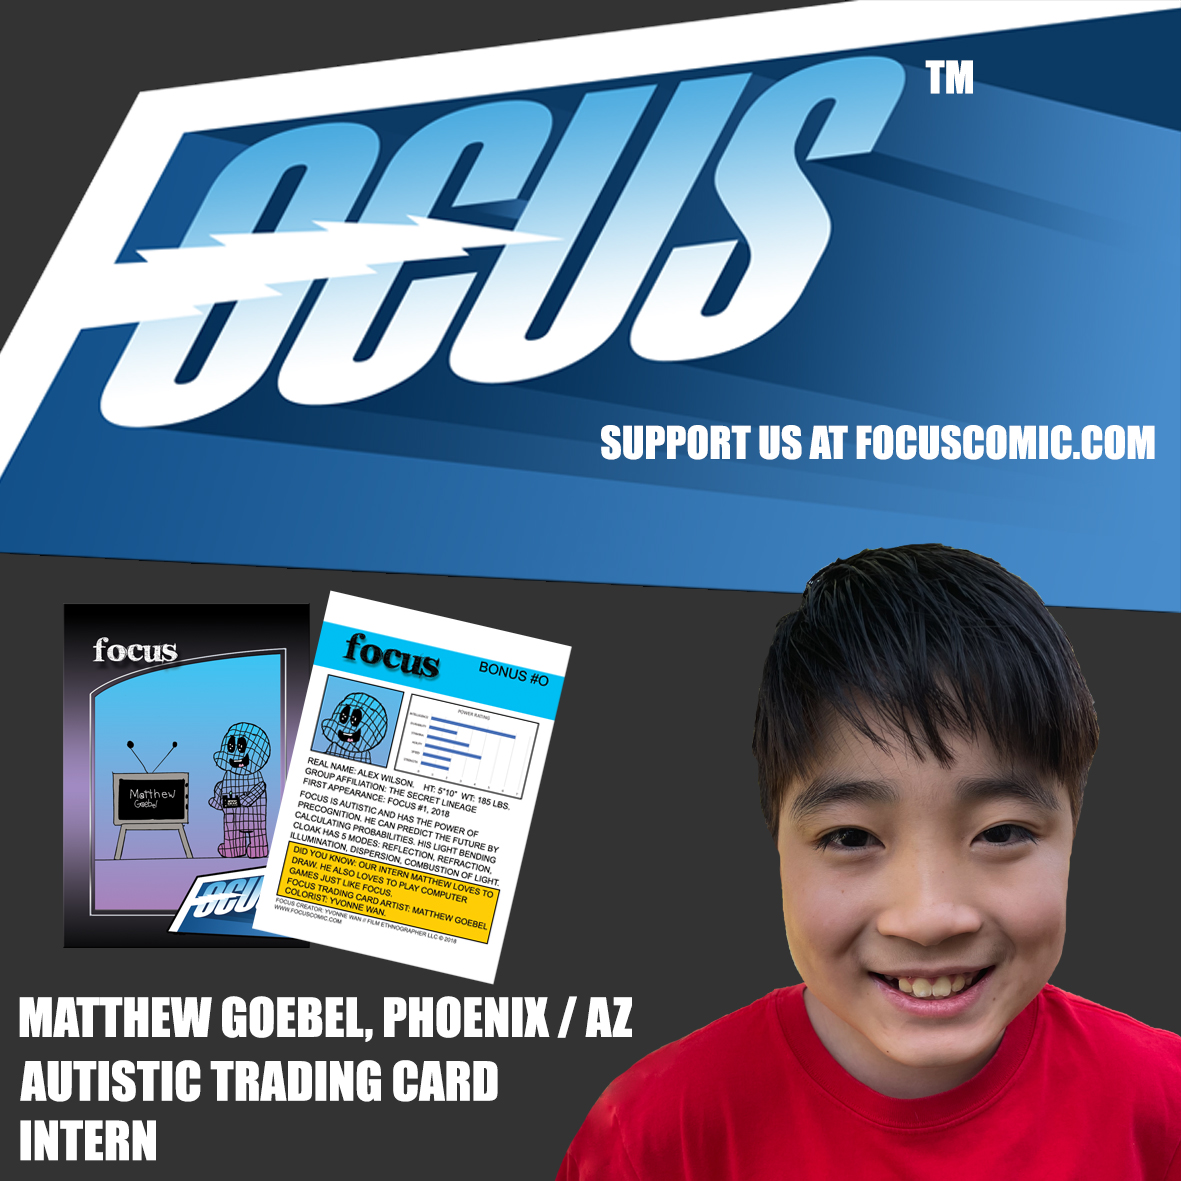 Meet our new autistic Trading Card intern: Matthew Goebel, 11 years old. Please support his art